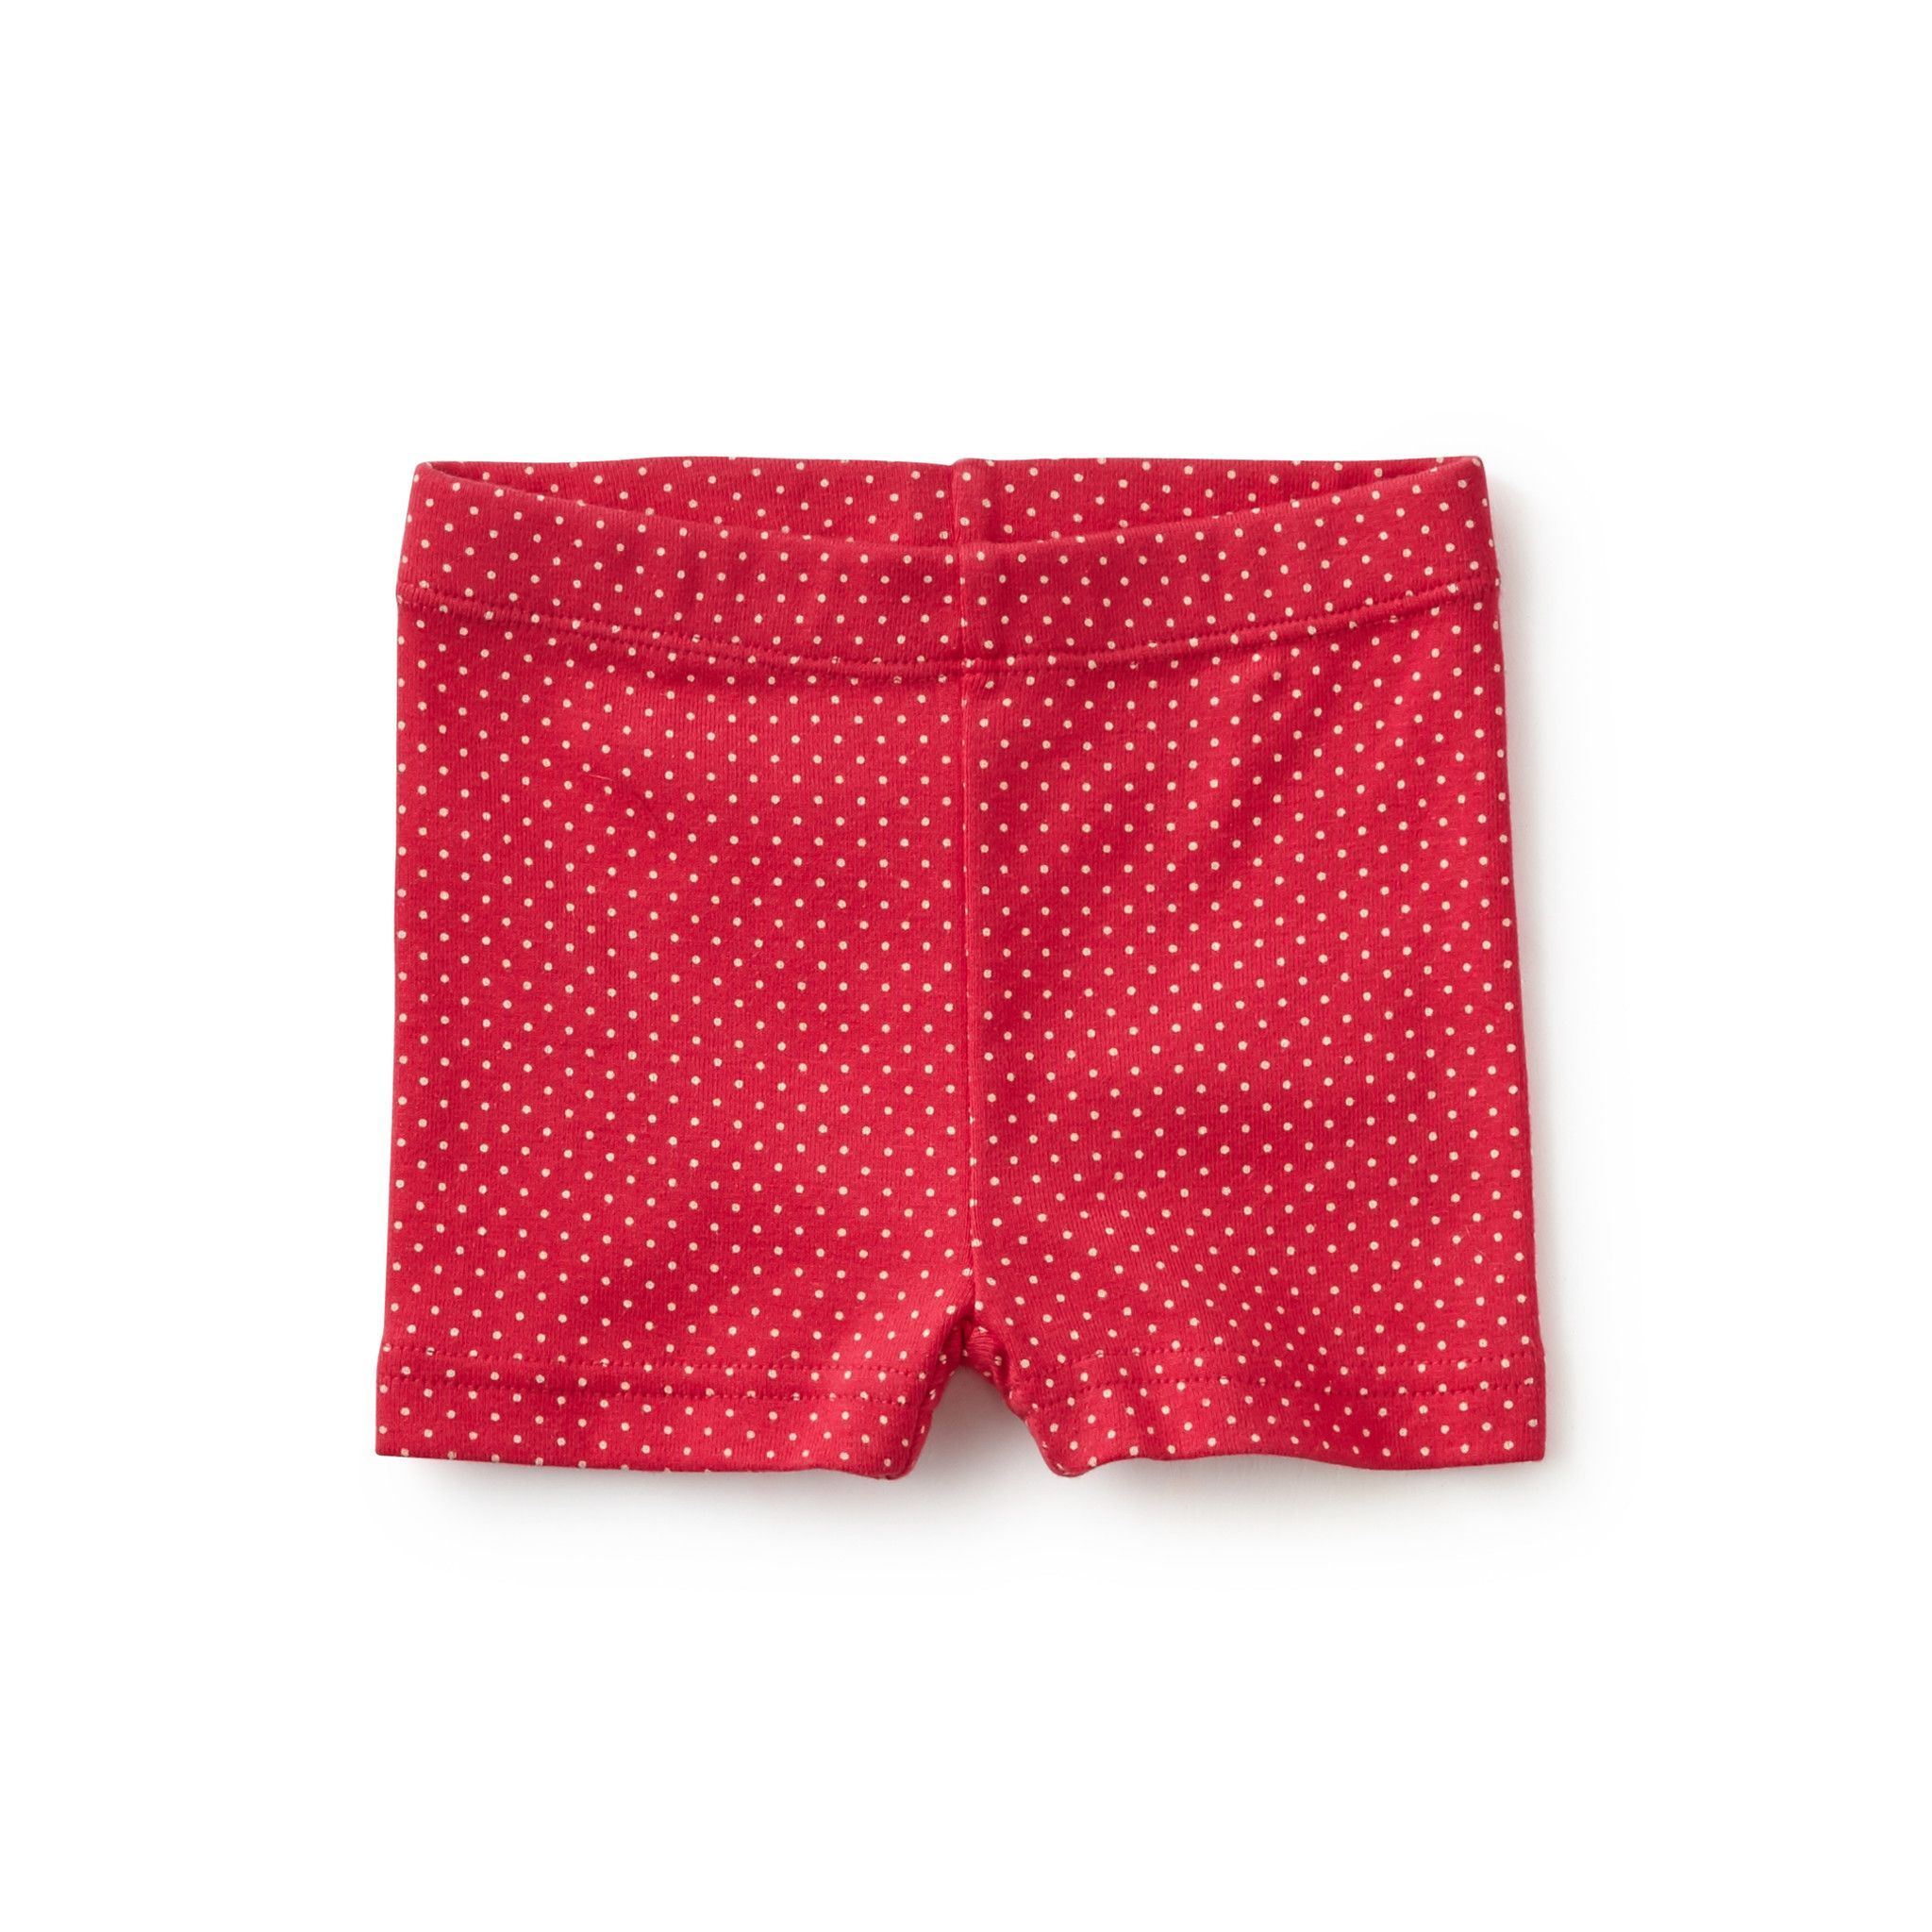 Tea Collection Dotty Somersault Shorts Rose of Sharon